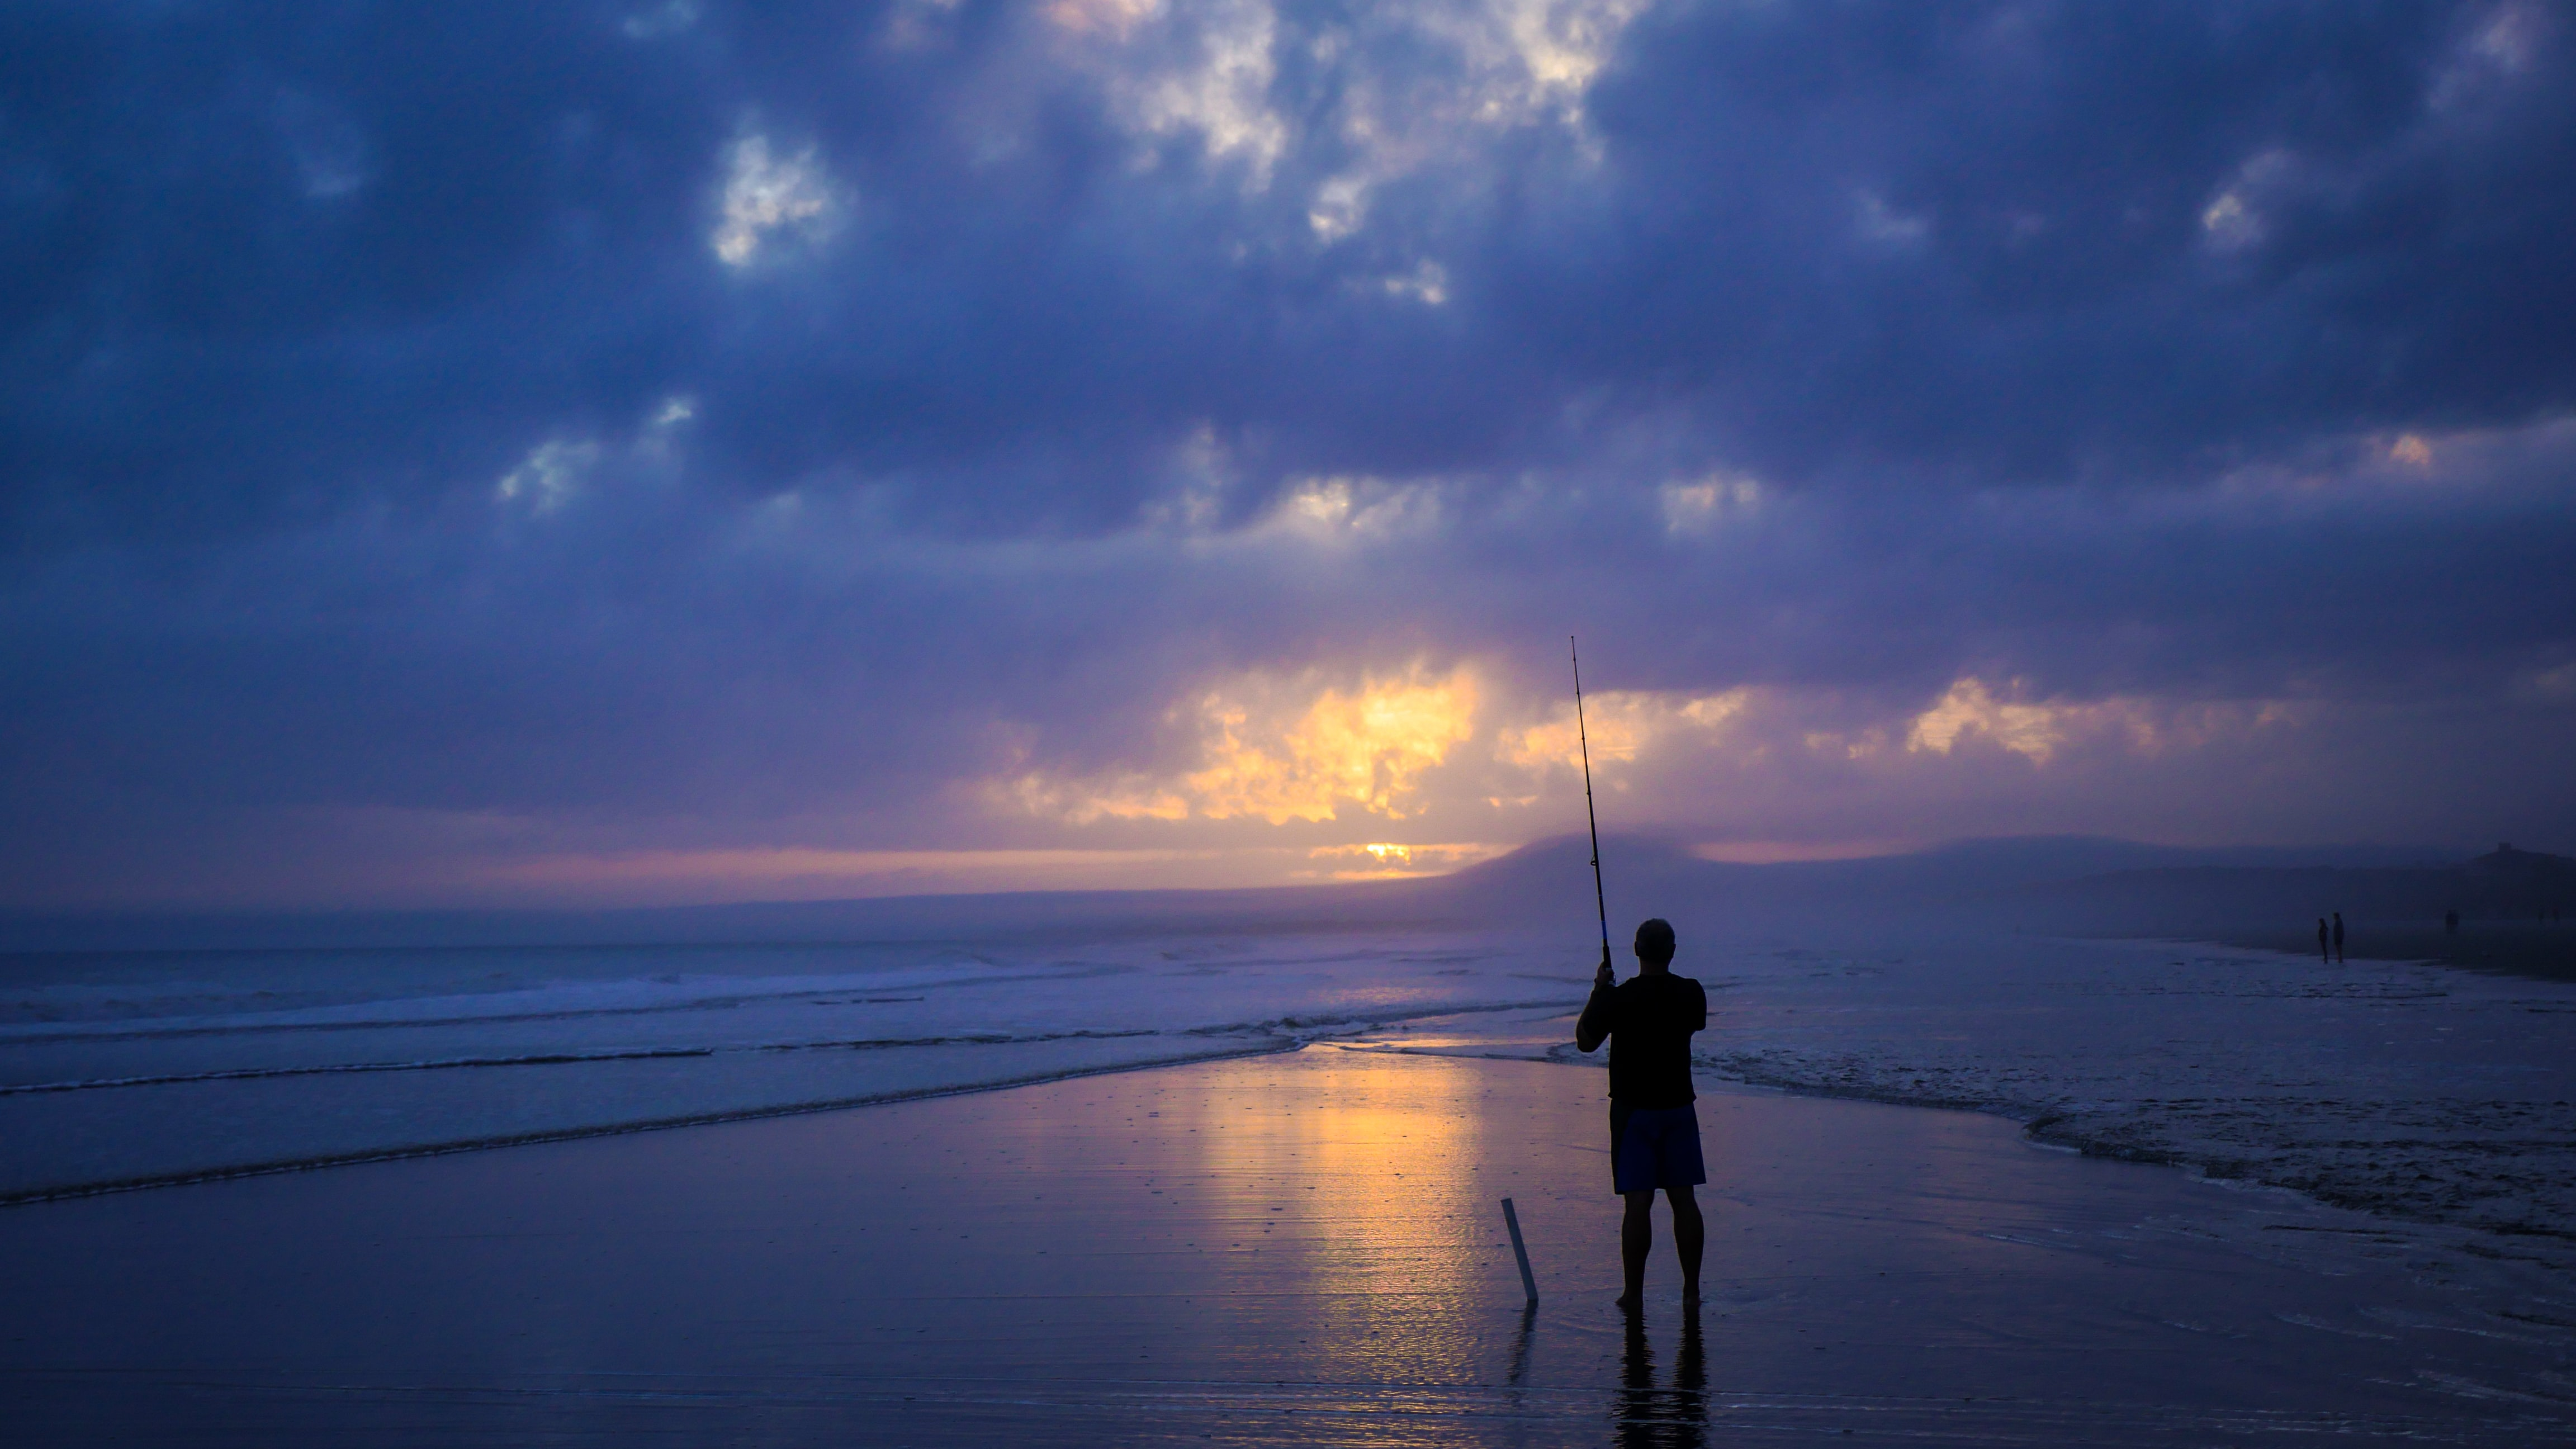 A silhouette of a fisherman fishing on a beach on Kiawah Island in the evening